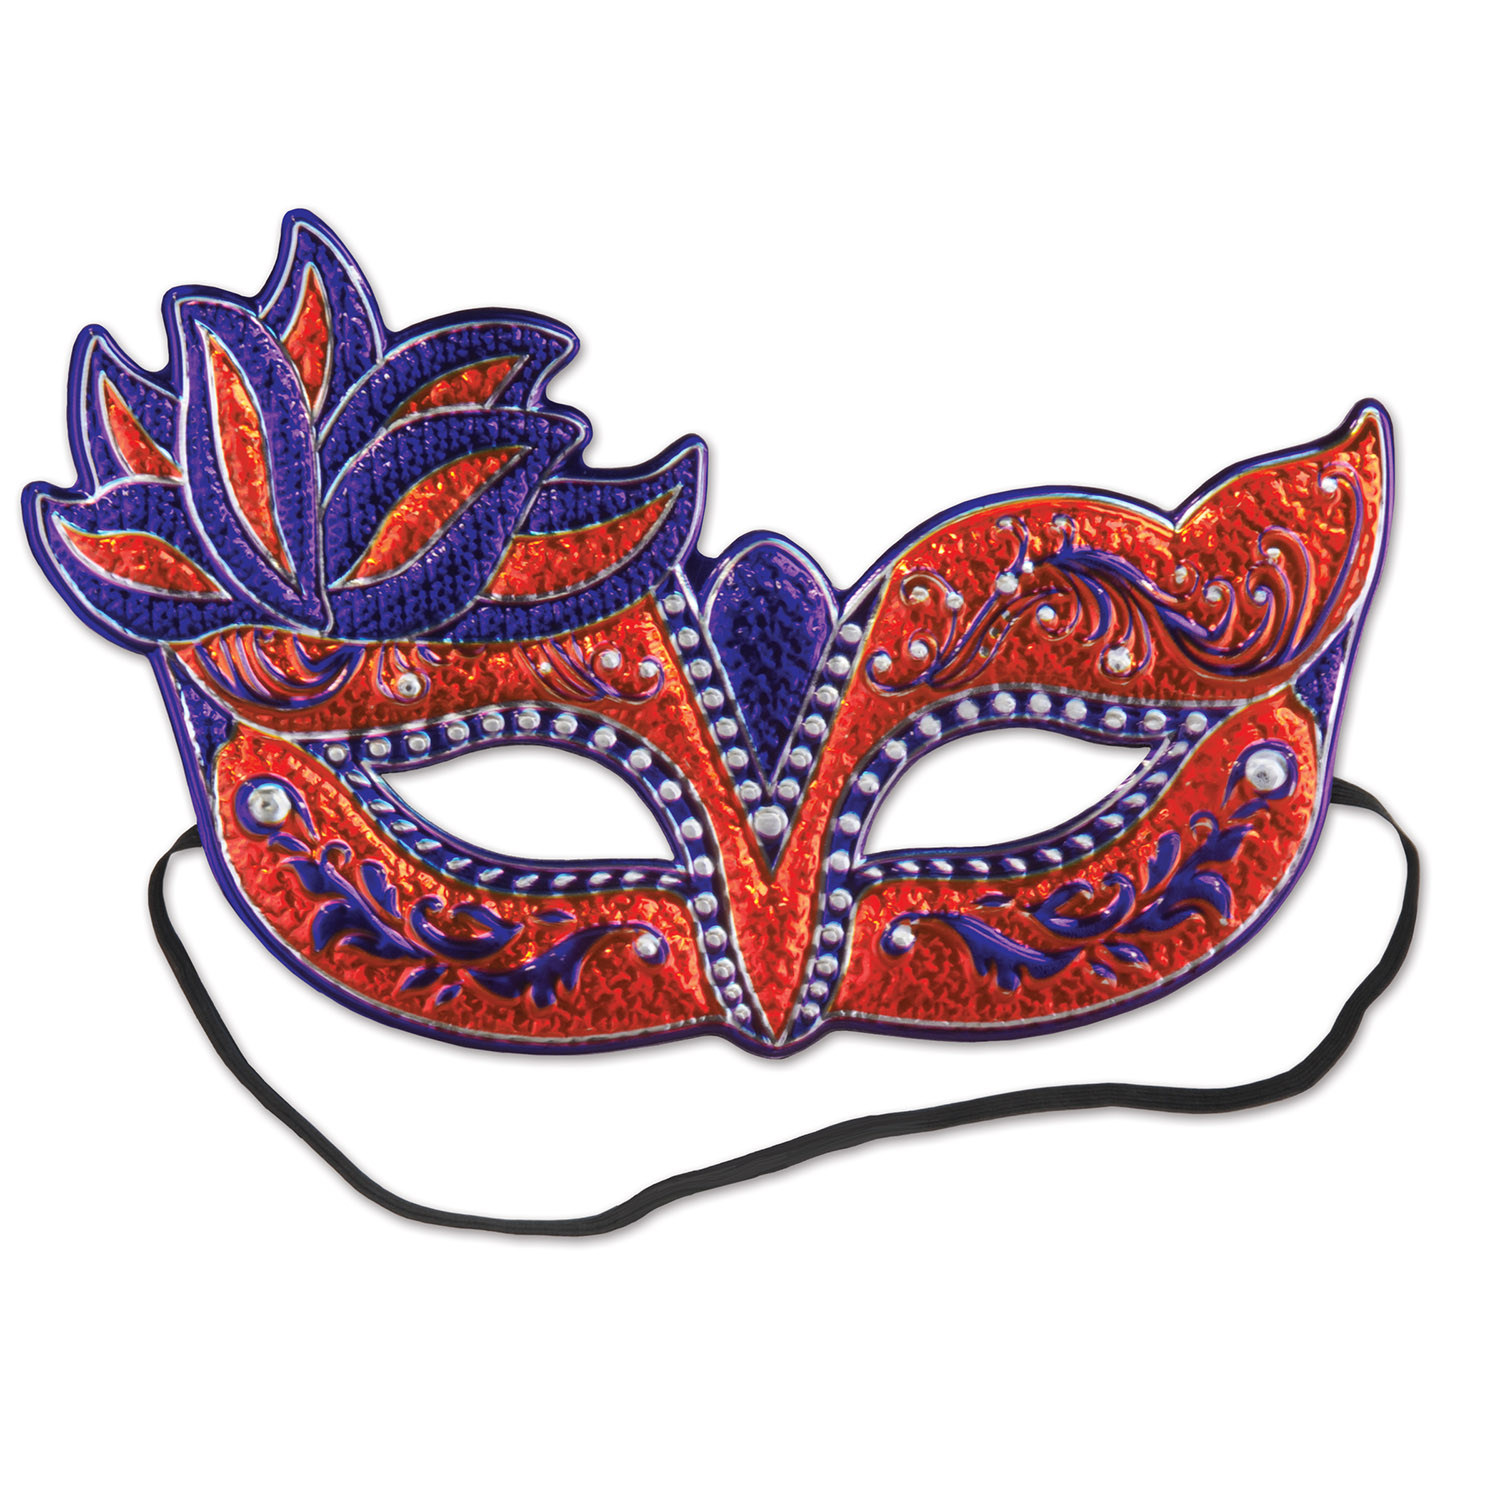 Costume Mask (Pack of 12) Costume Mask, mardi gras, halloween, new years eve, orange, purple, wholesale, inexpensive, bulk